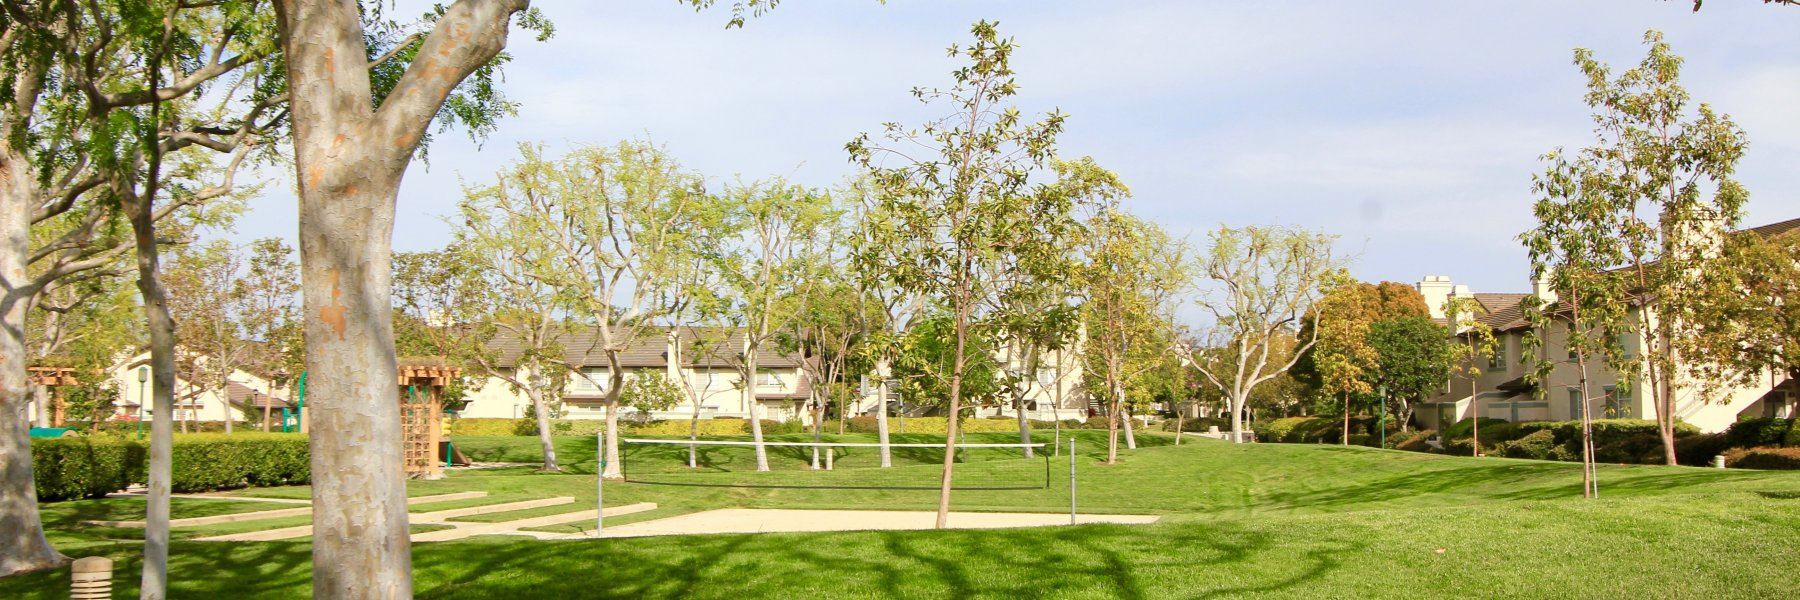 University Town Center is a community of homes in Irvine California